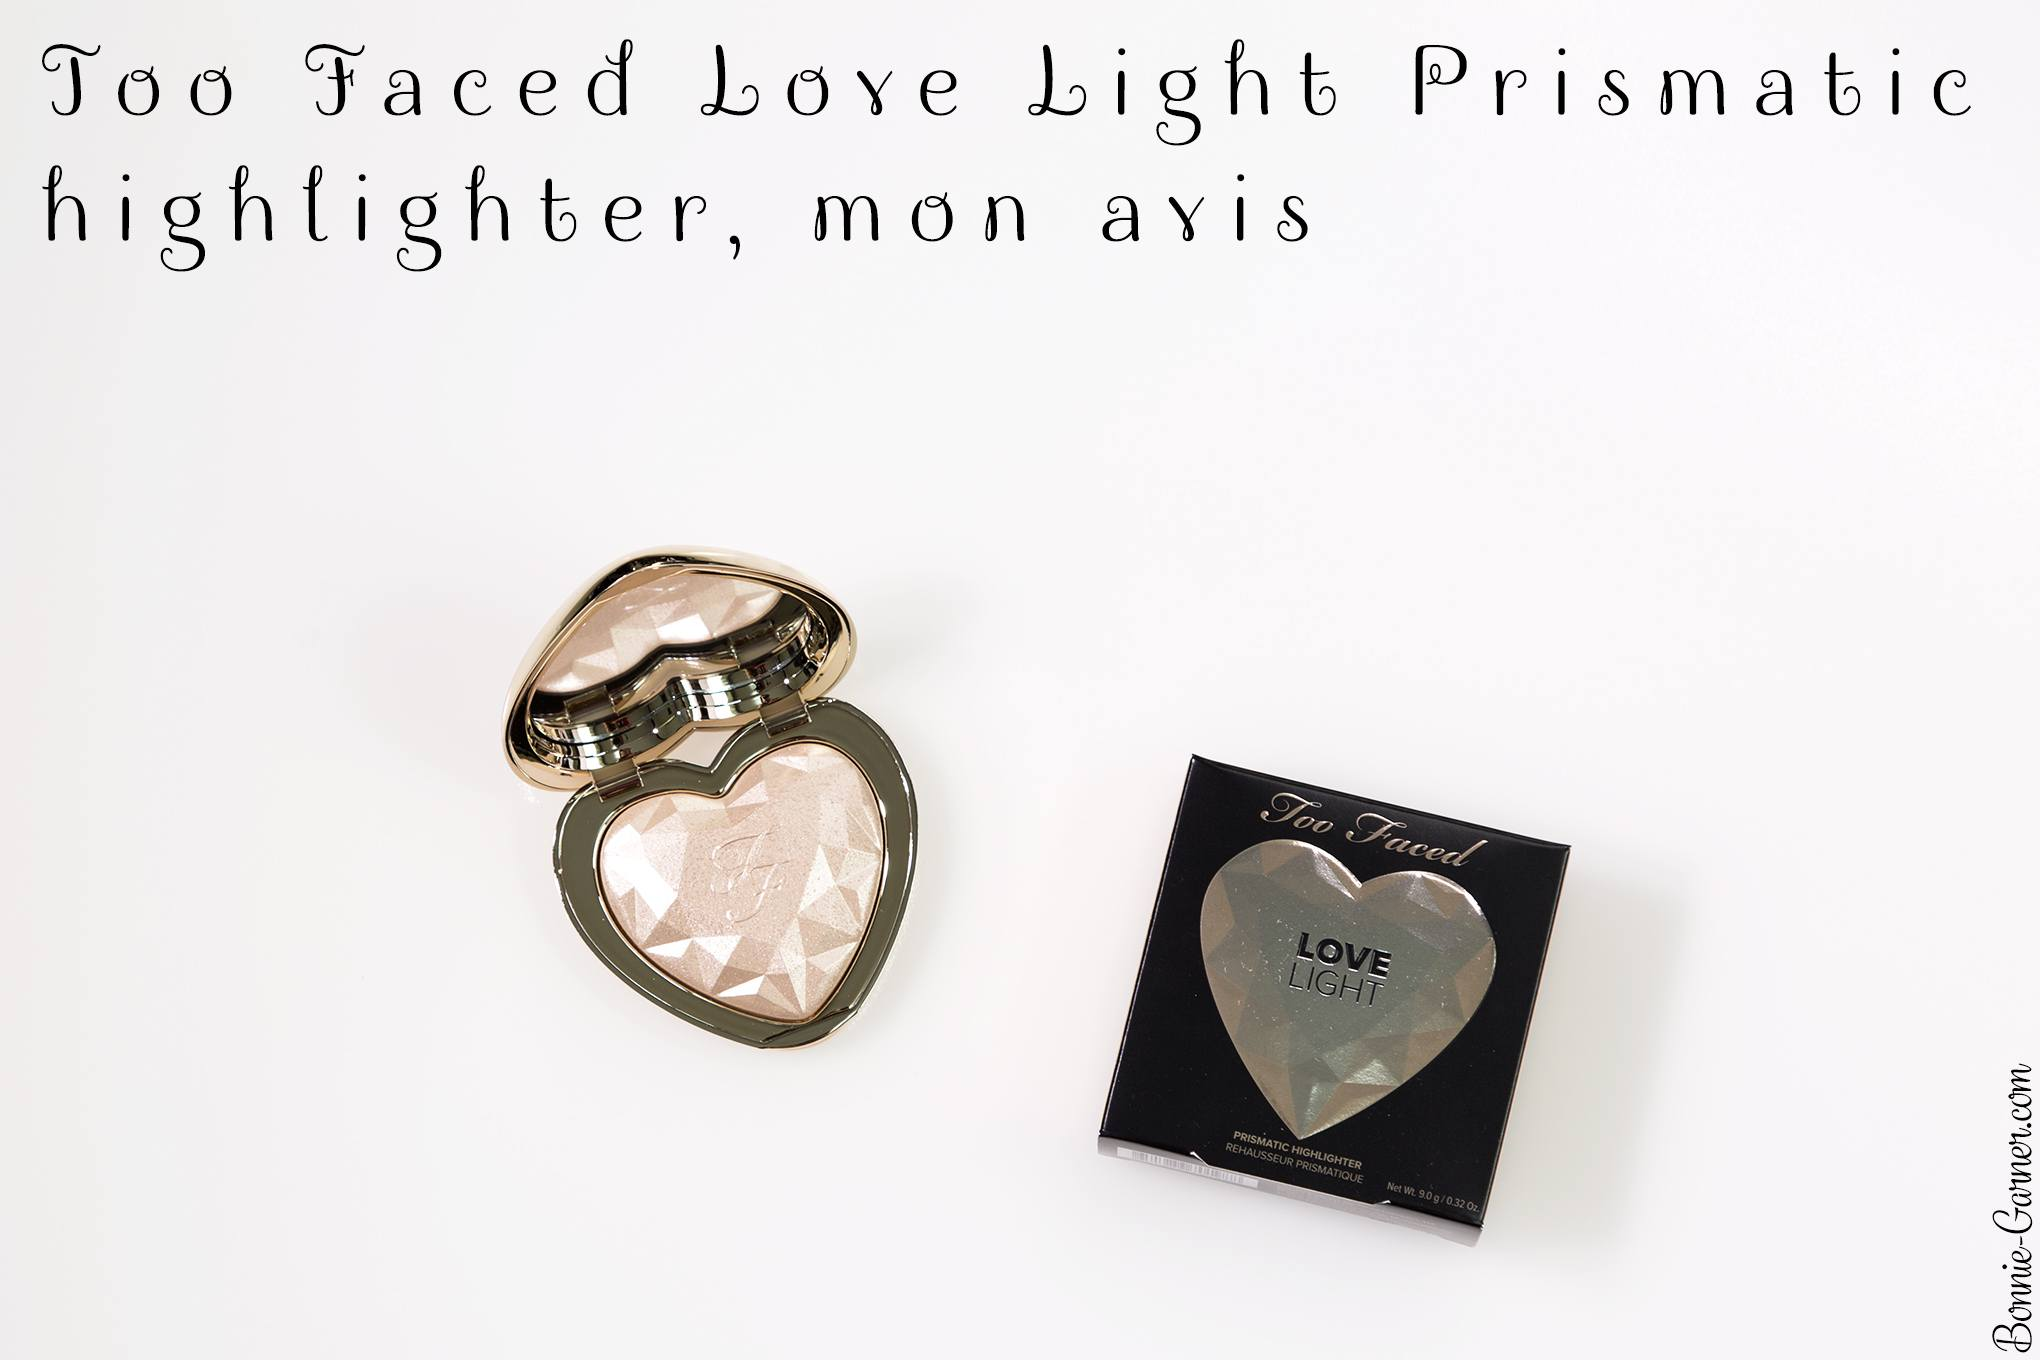 Too Faced Love Light Prismatic highlighter, mon avis